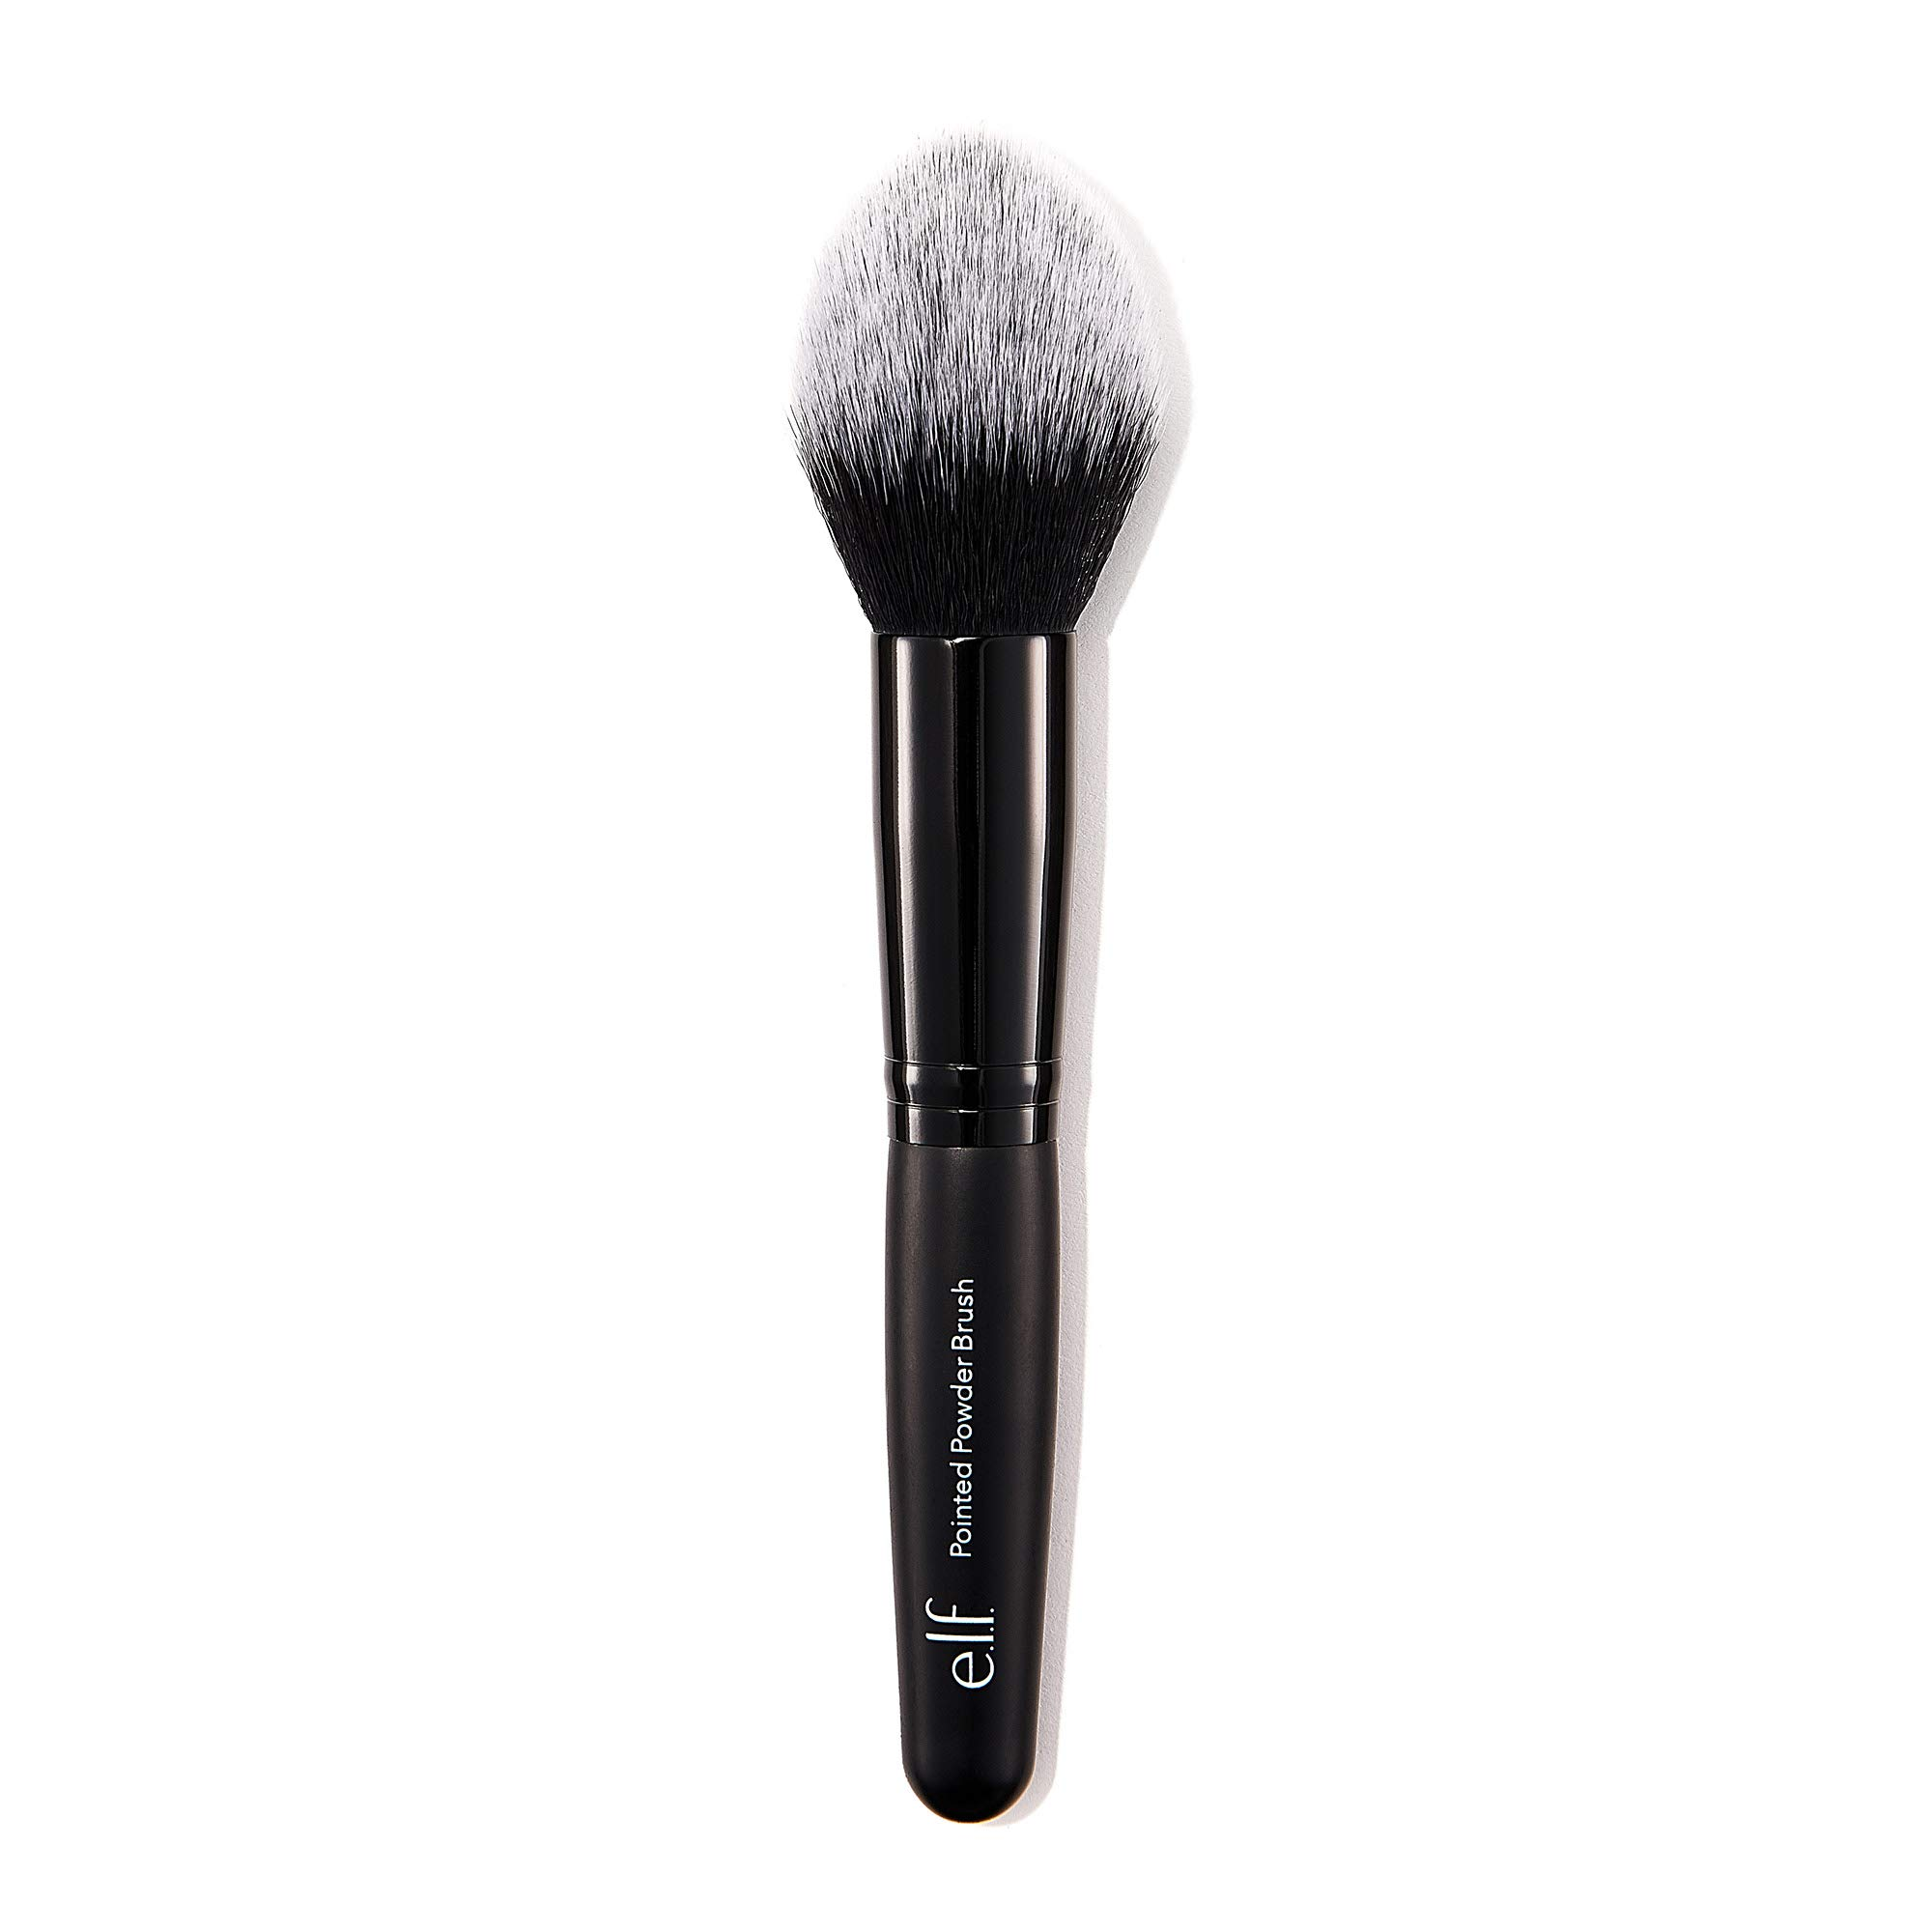 e.l.f. Pointed Powder Brush for Precision Application, Synthetic